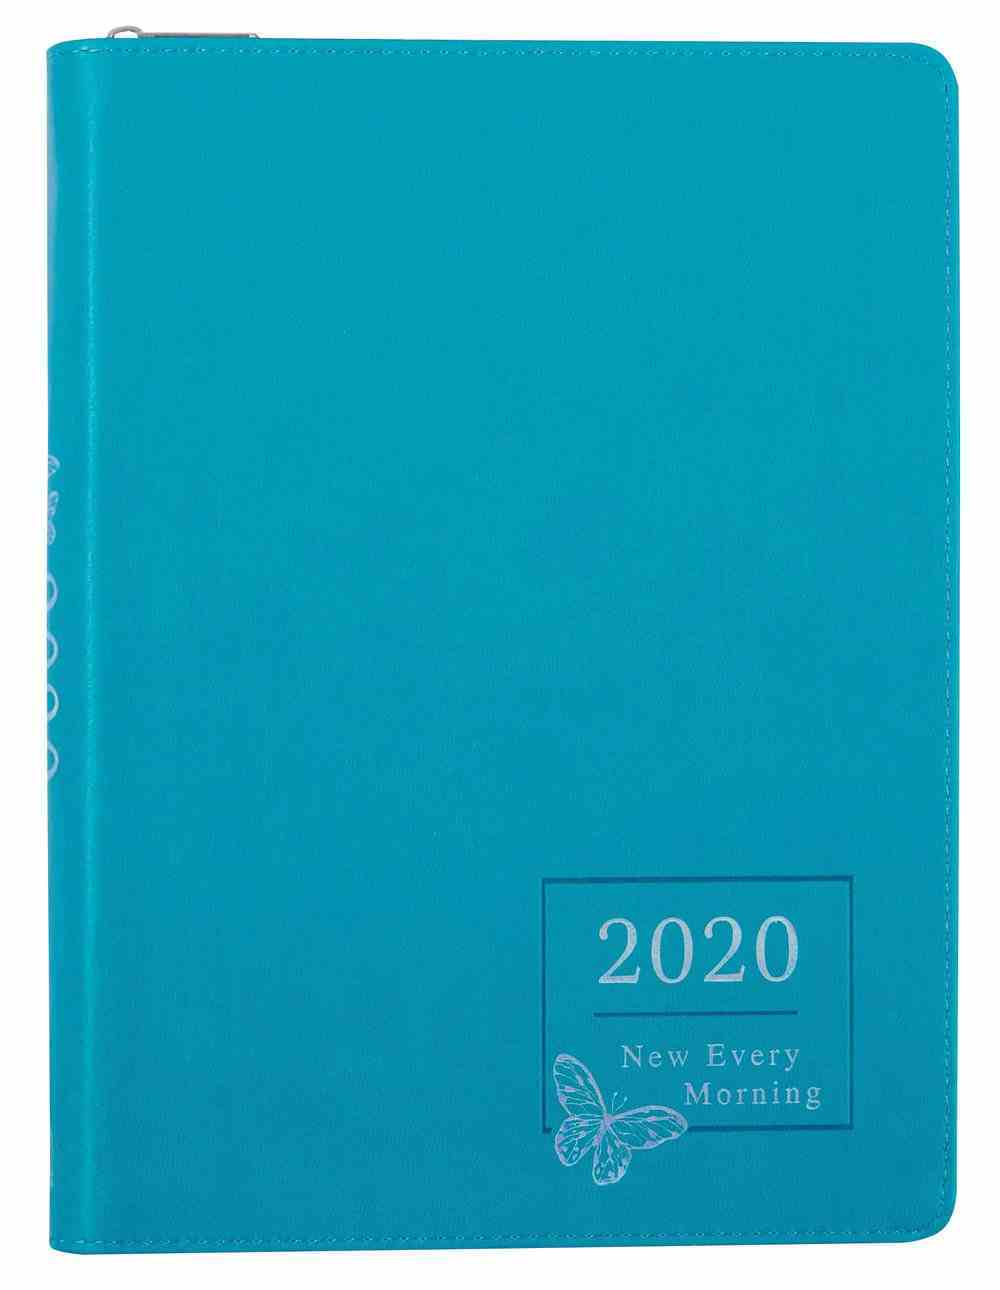 2020 Large 18-Month Diary/Planner: New Every Morning, Teal Imitation Leather